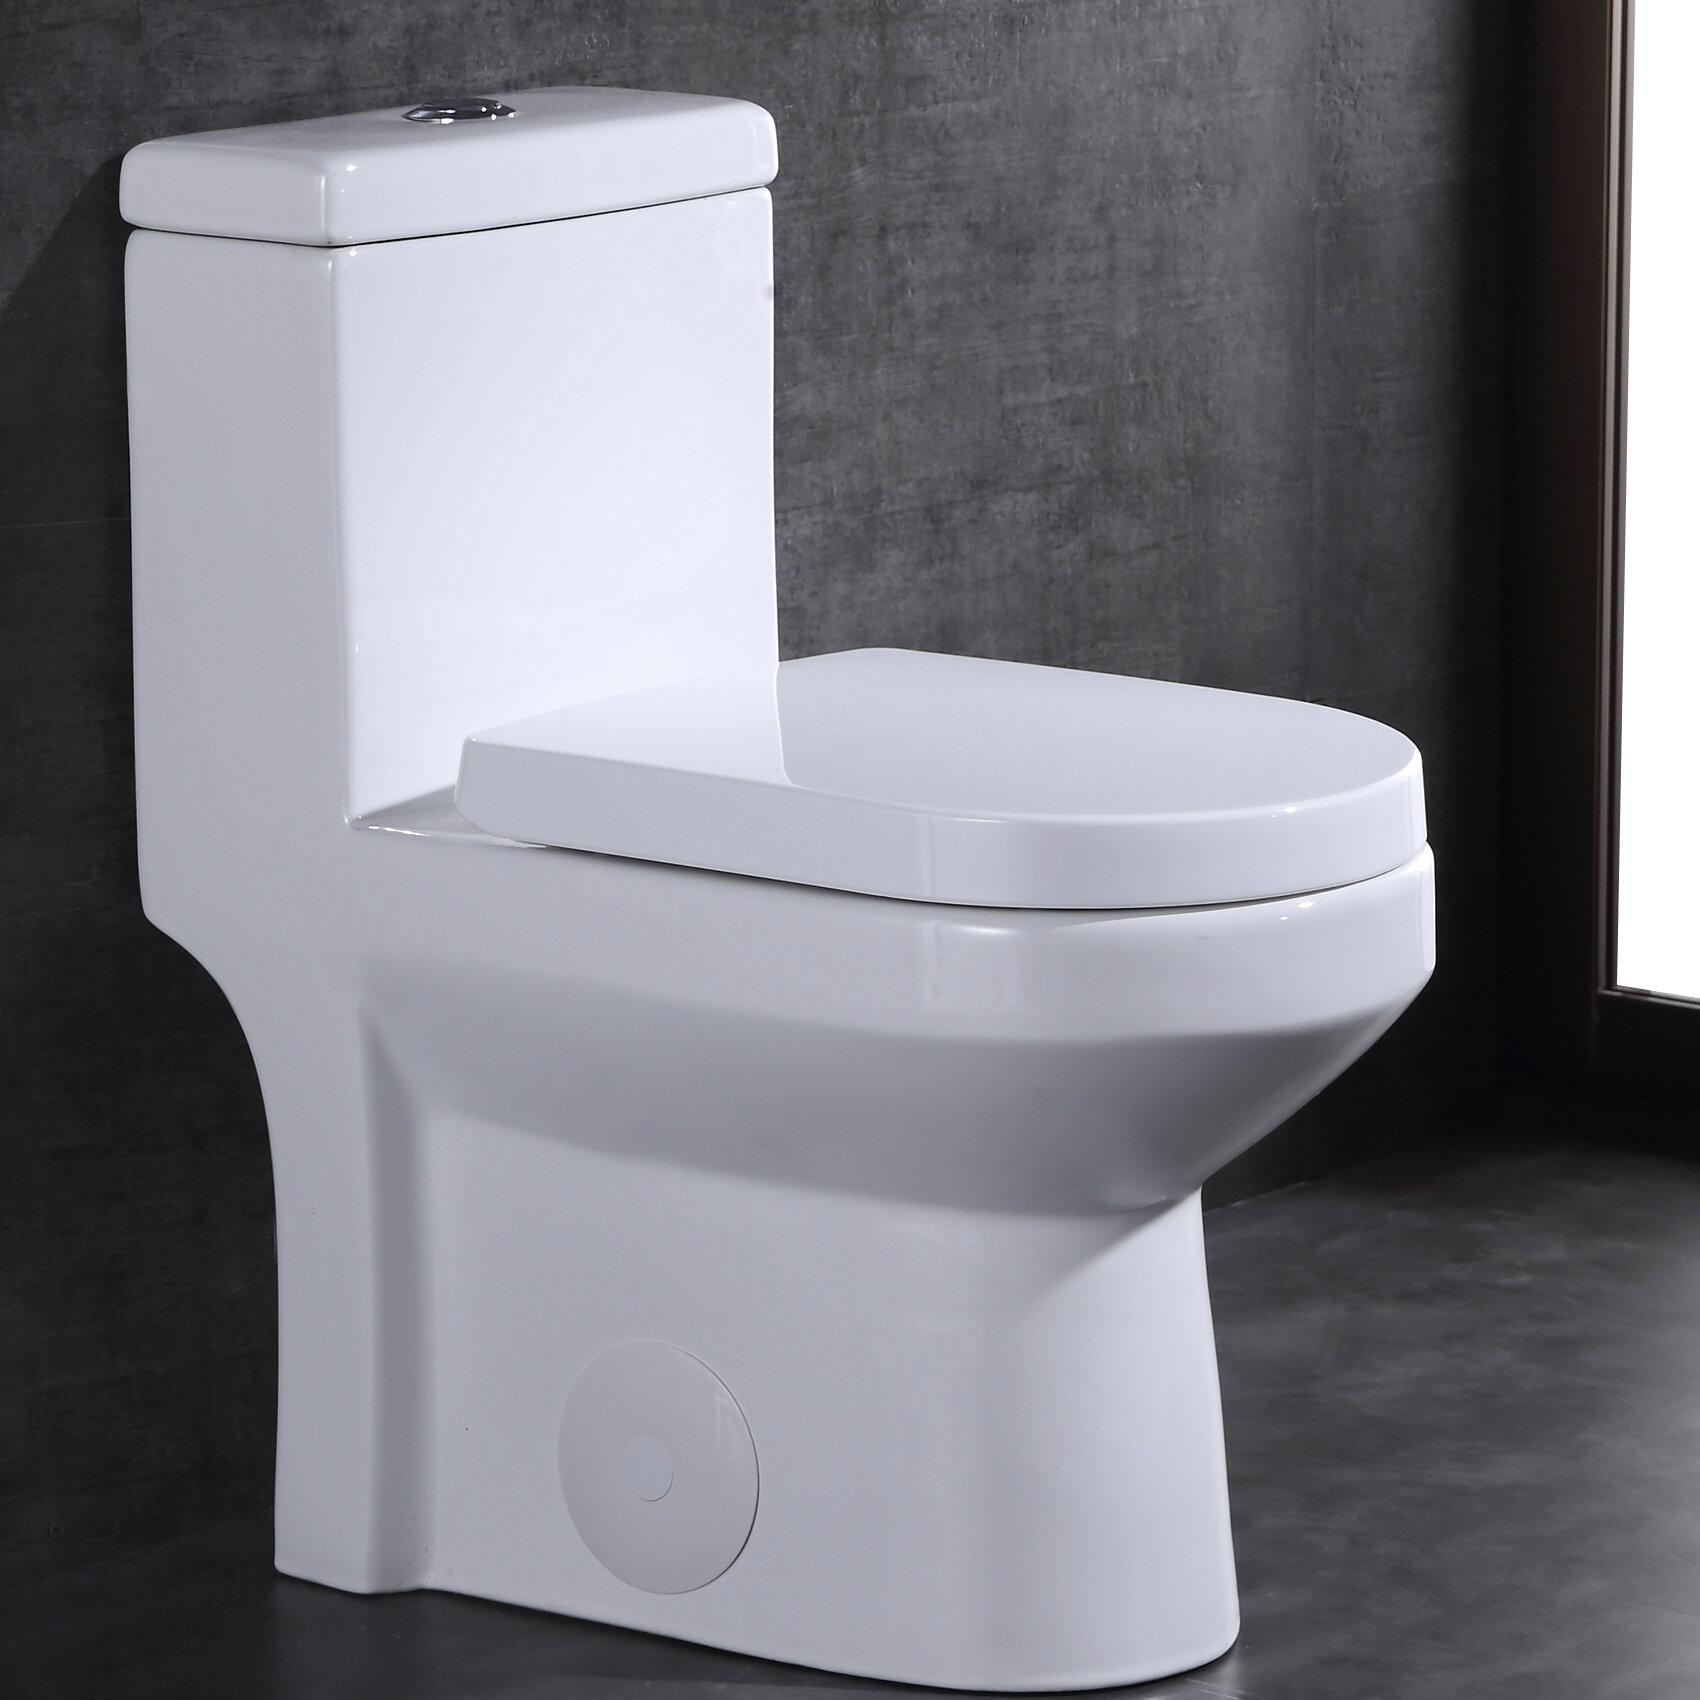 Super Dual Flush 1 28 Gpf Elongated One Piece Toilet Seat Included Caraccident5 Cool Chair Designs And Ideas Caraccident5Info